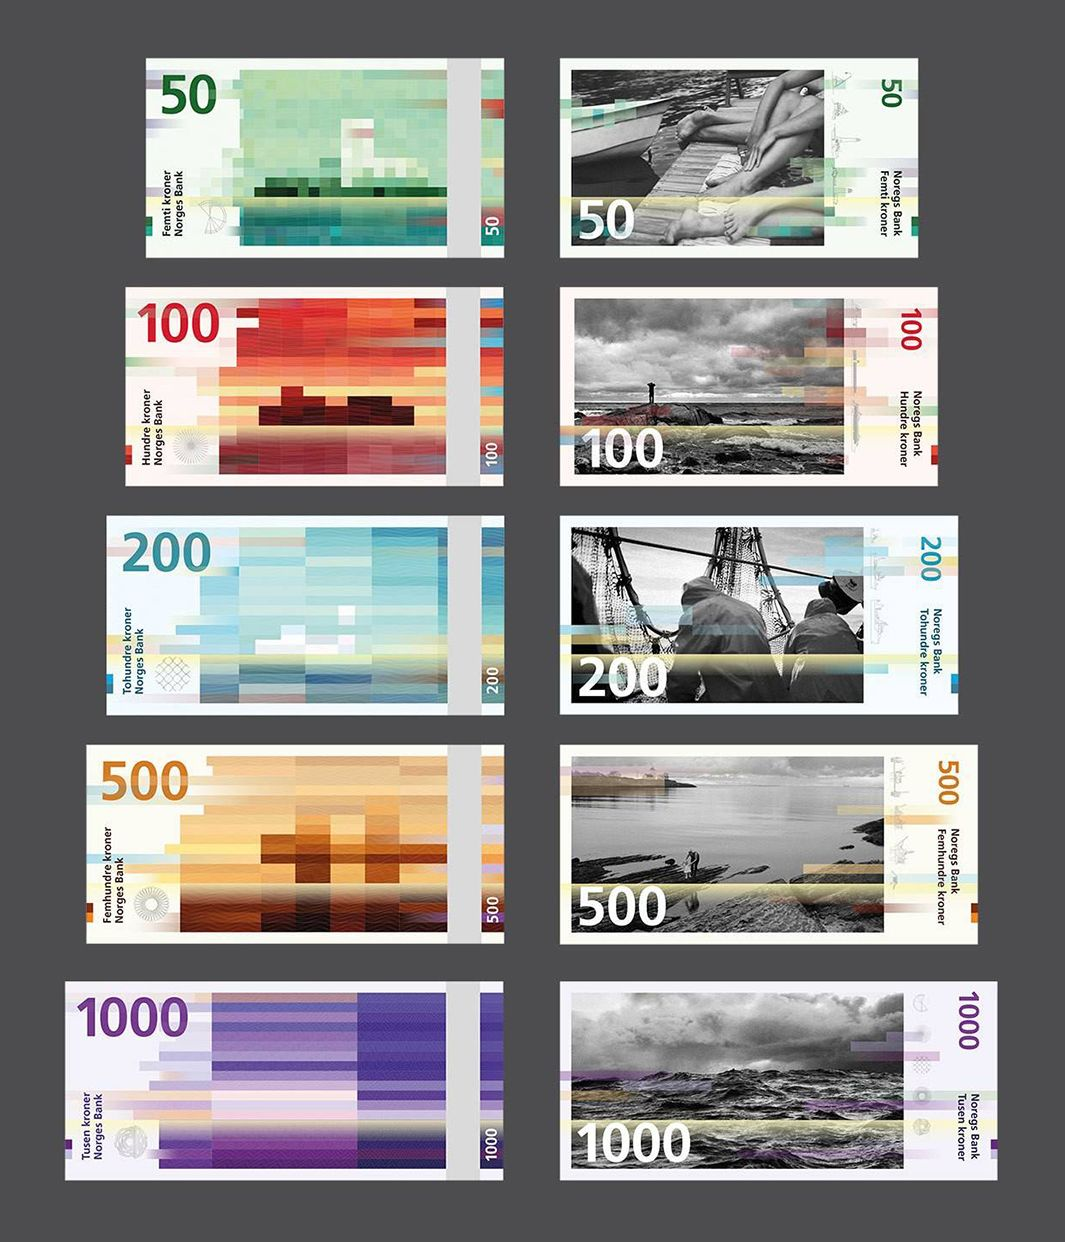 Norway S Redesigned Banknotes Will Be The World S Coolest Currency Banknotes Design Currency Design Money Design